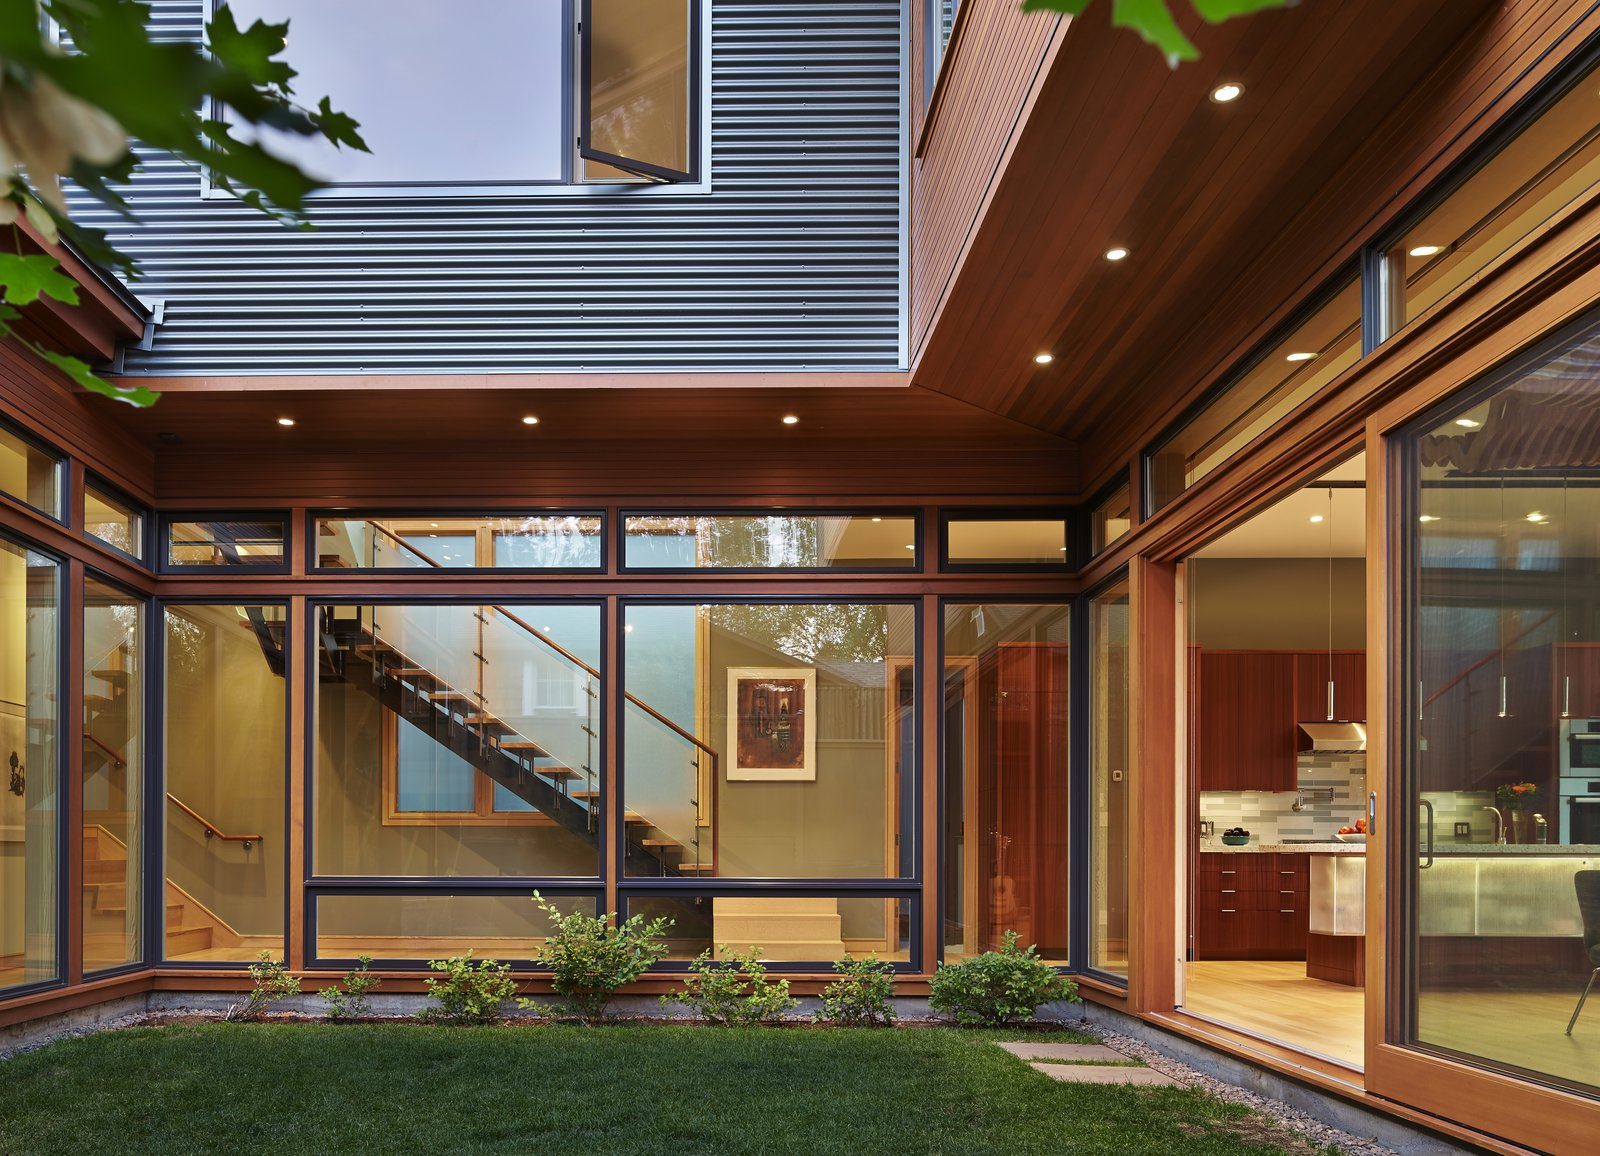 Exterior, Metal, Wood, Metal, Flat, and House View of courtyard  Best Exterior Metal House Flat Metal Photos from DESCHUTES House